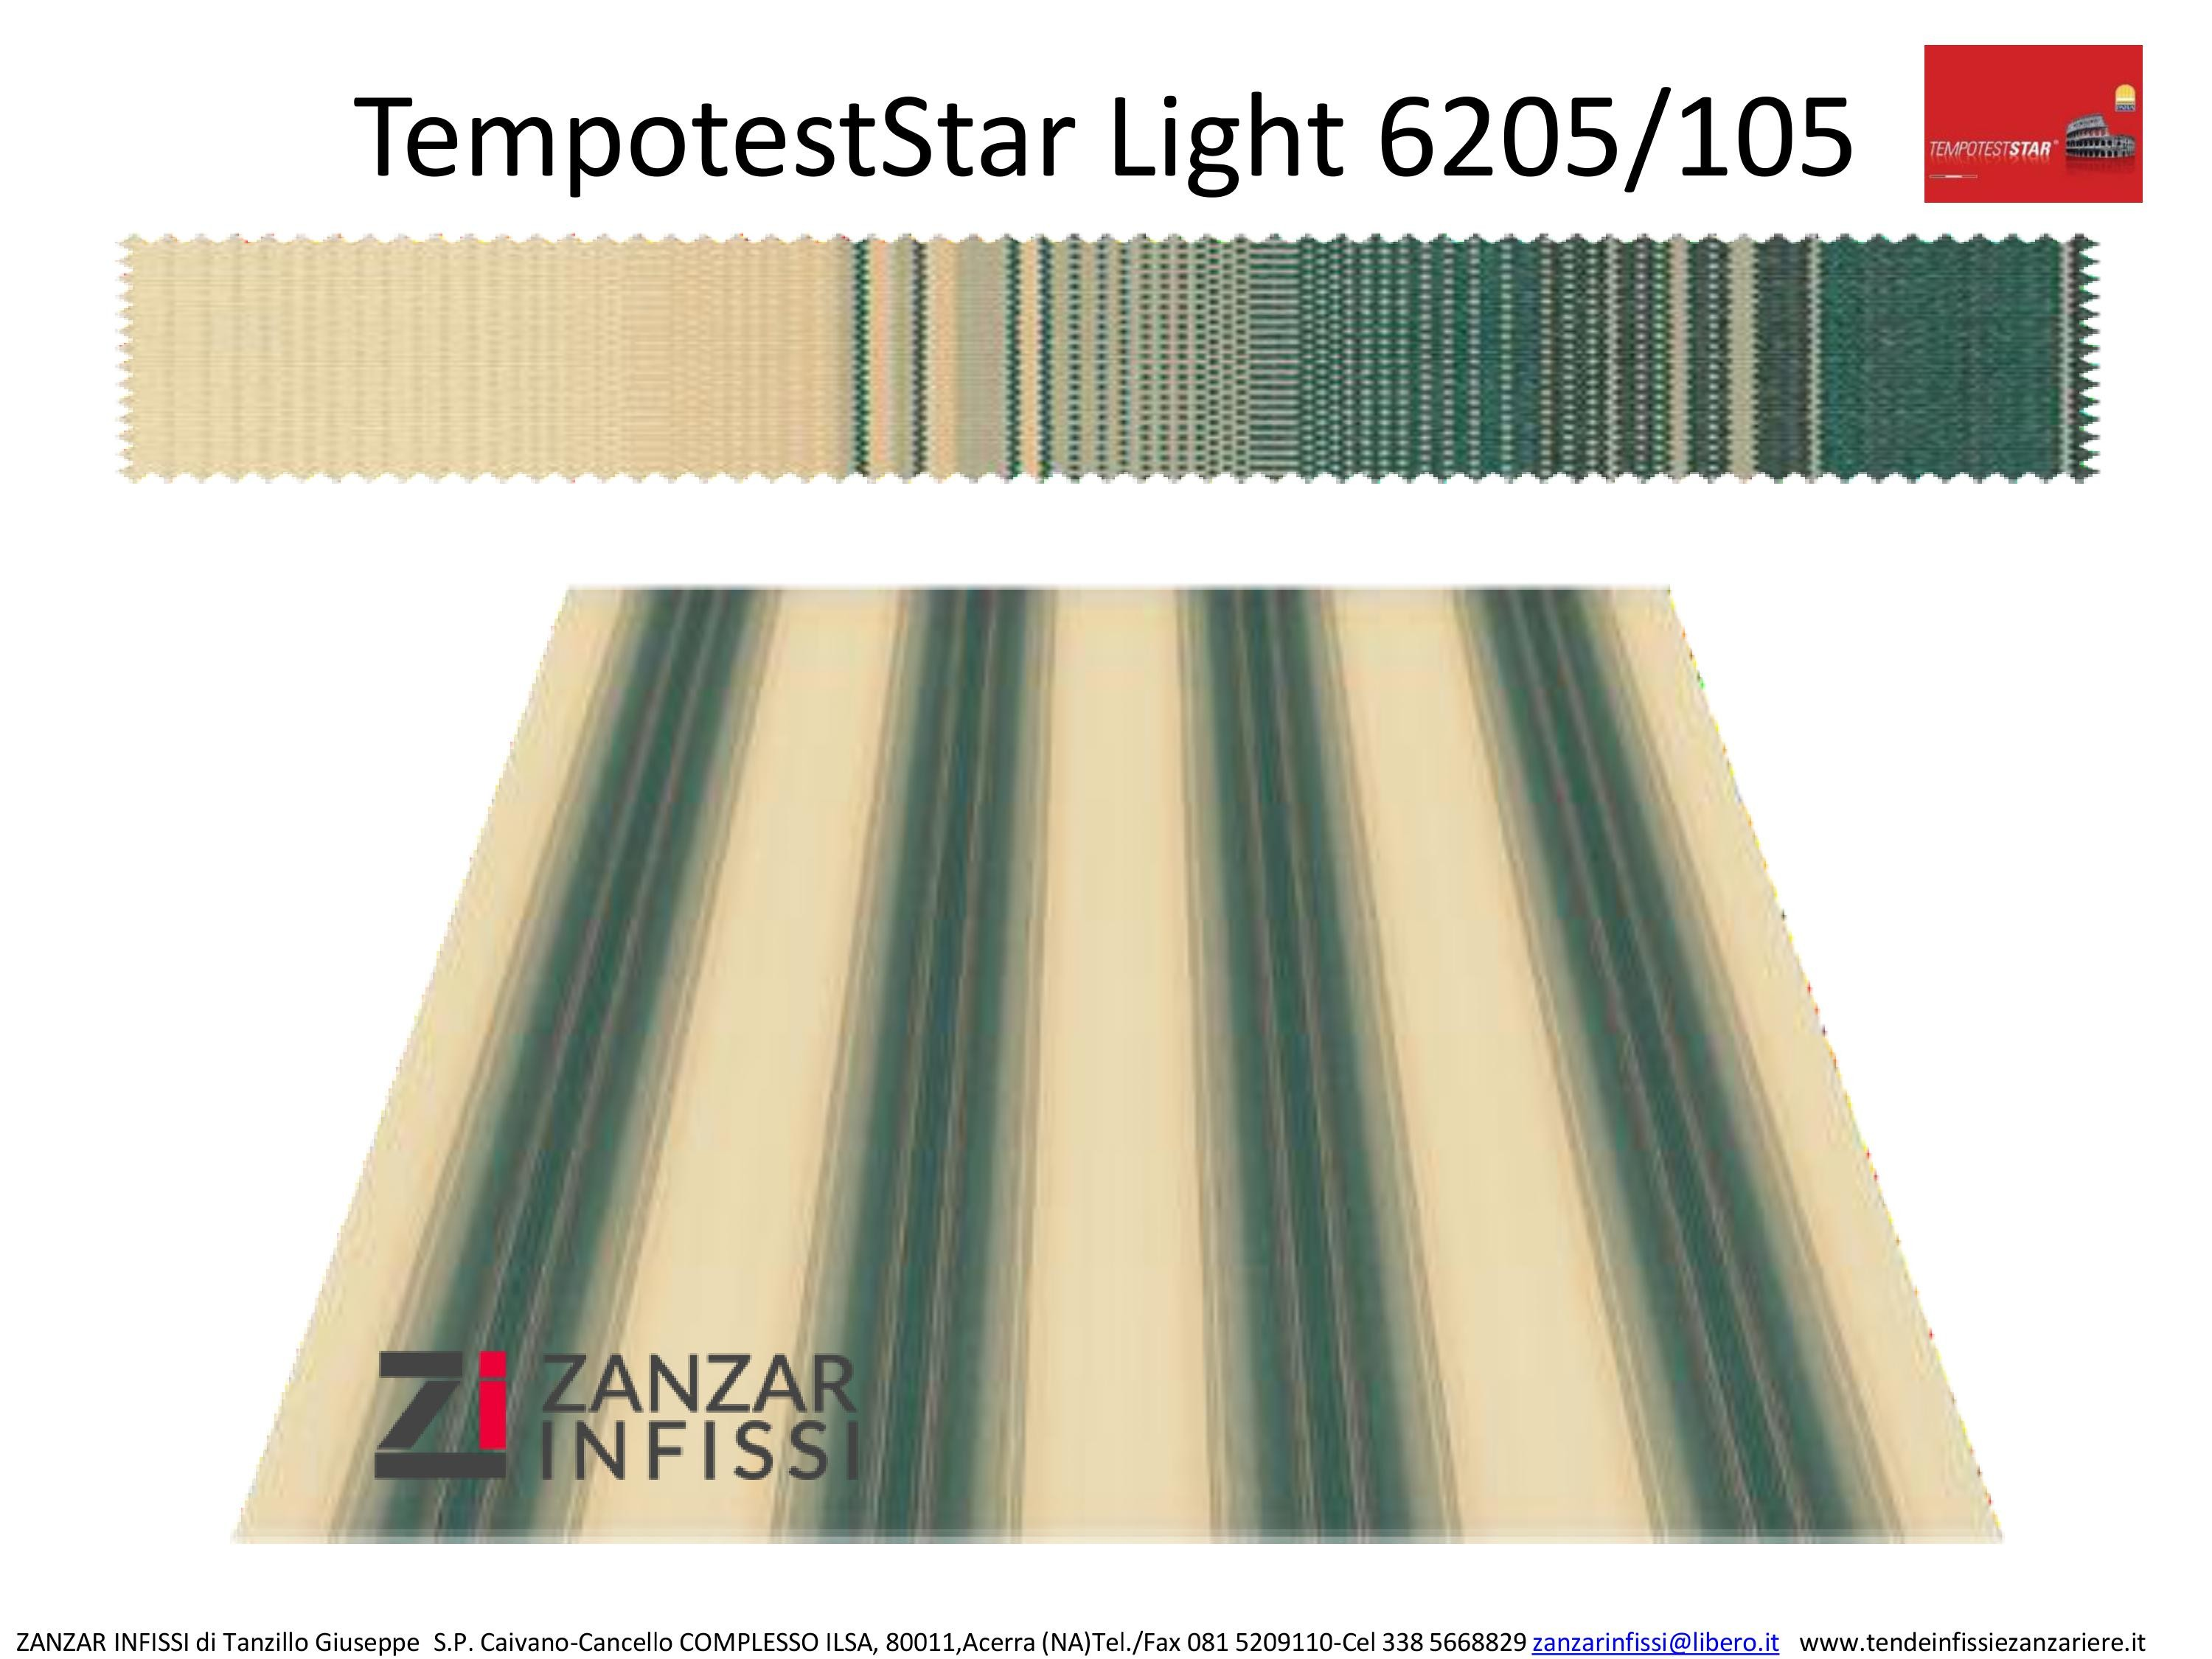 Tempotest star light 6205/105